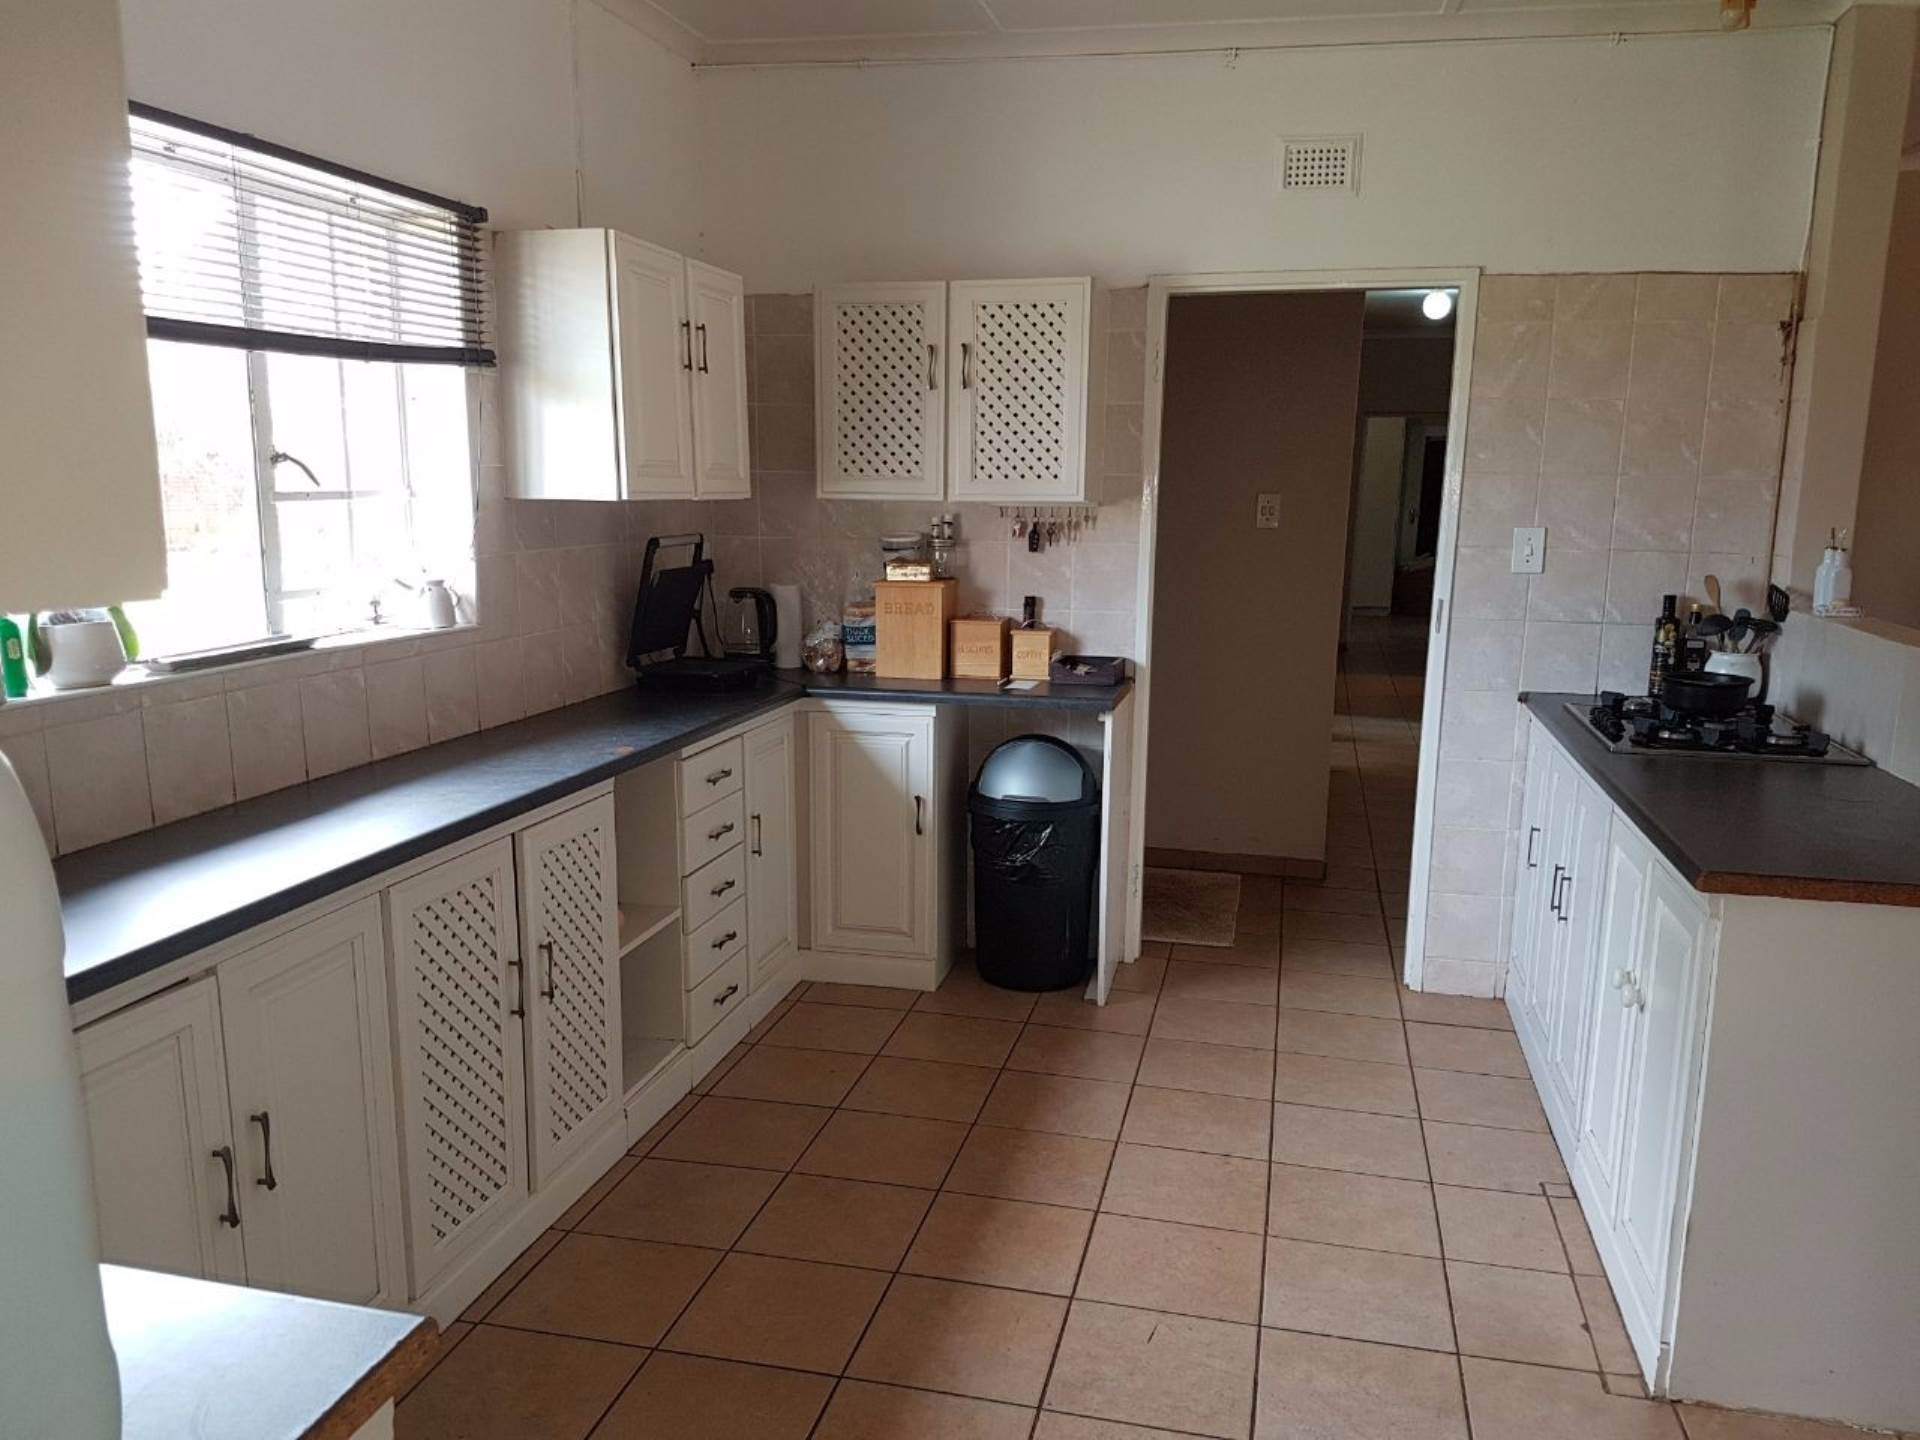 4 BedroomHouse For Sale In Kwambonambi